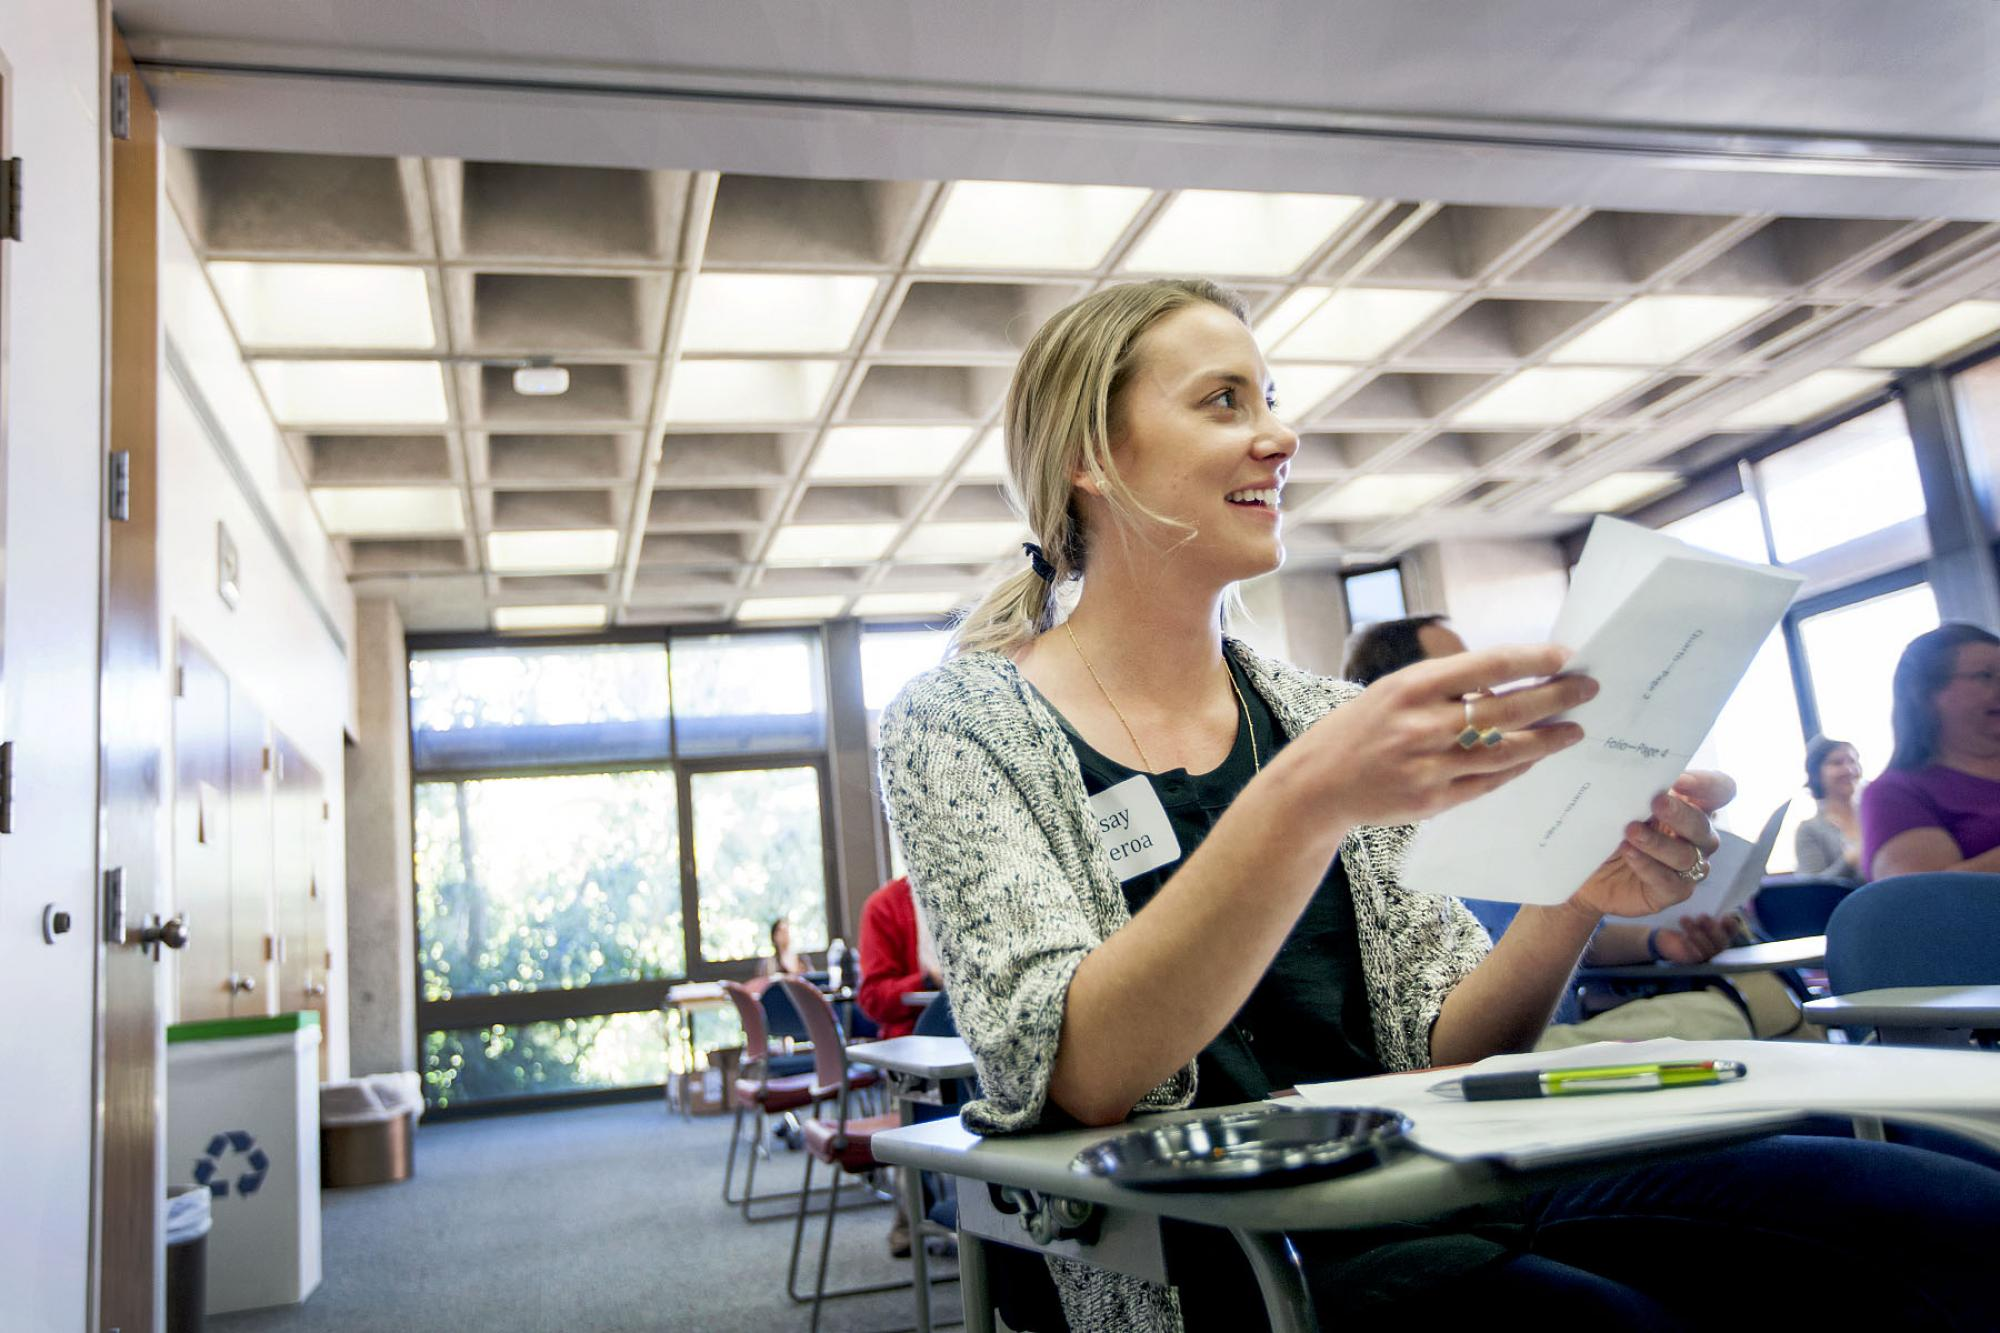 Lindsay Sparks-Figueroa, a 2008 UA alumna and now an English teacher at the Academy of Tucson High School, attempts to fold her own folio out of a handout from the Teacher Training Workshop.